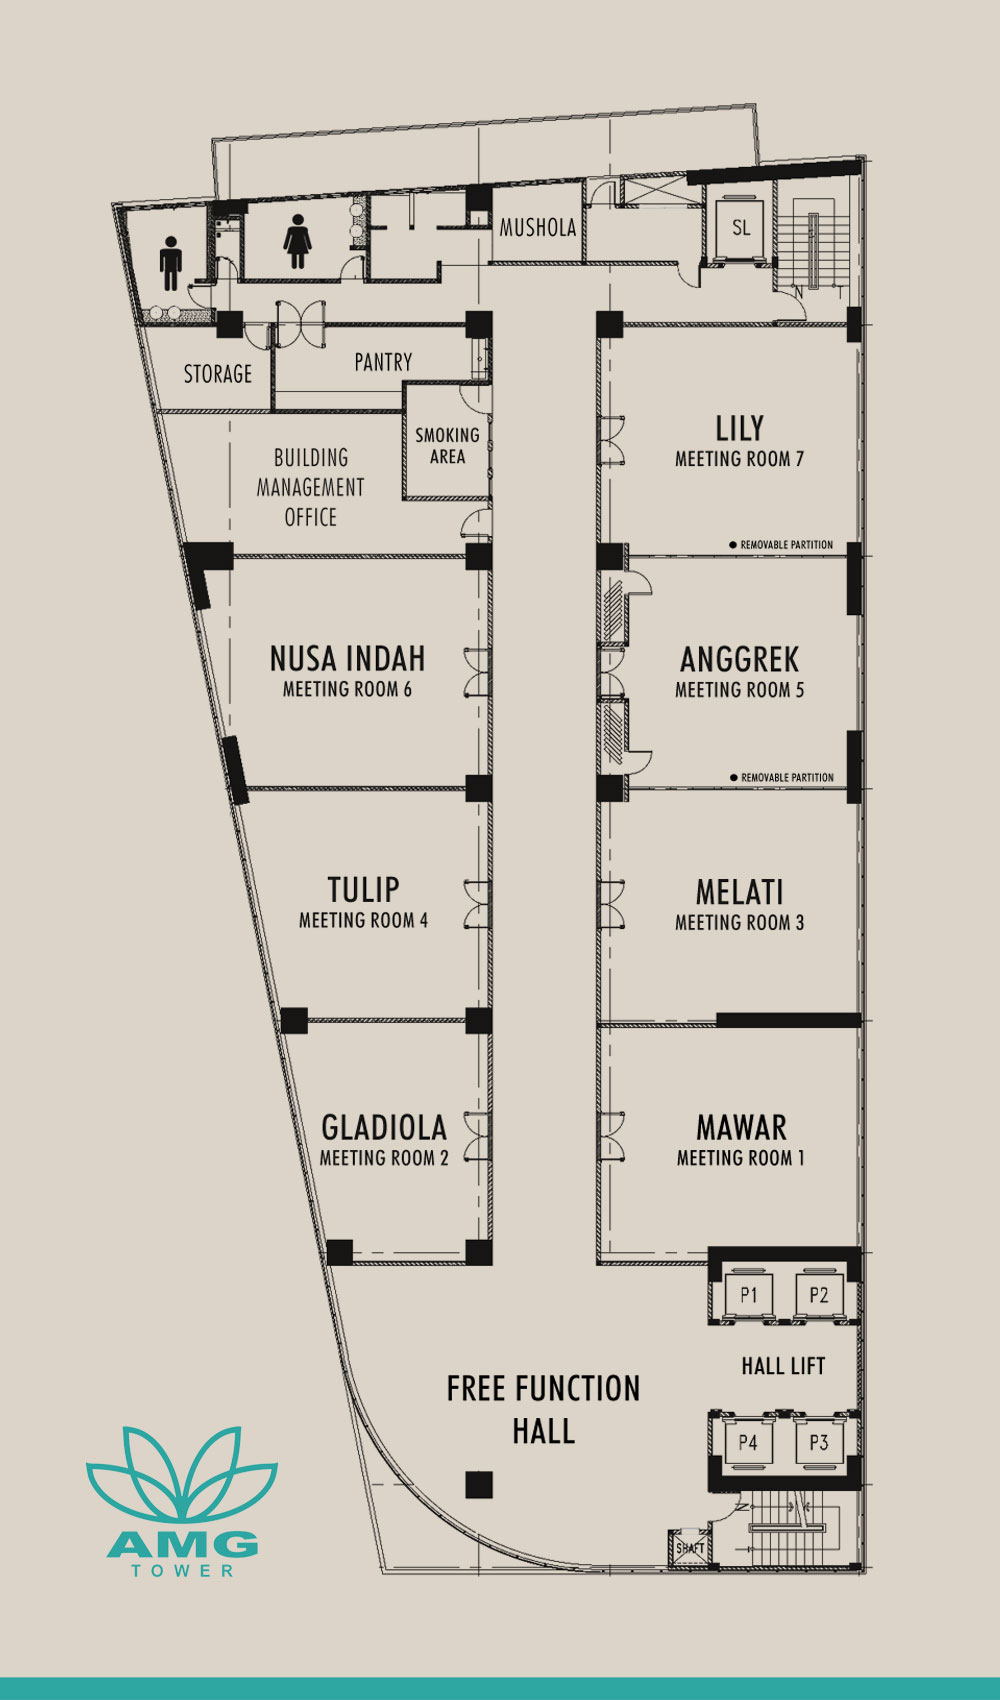 saraswanti_amgtower---meetingroom-layout